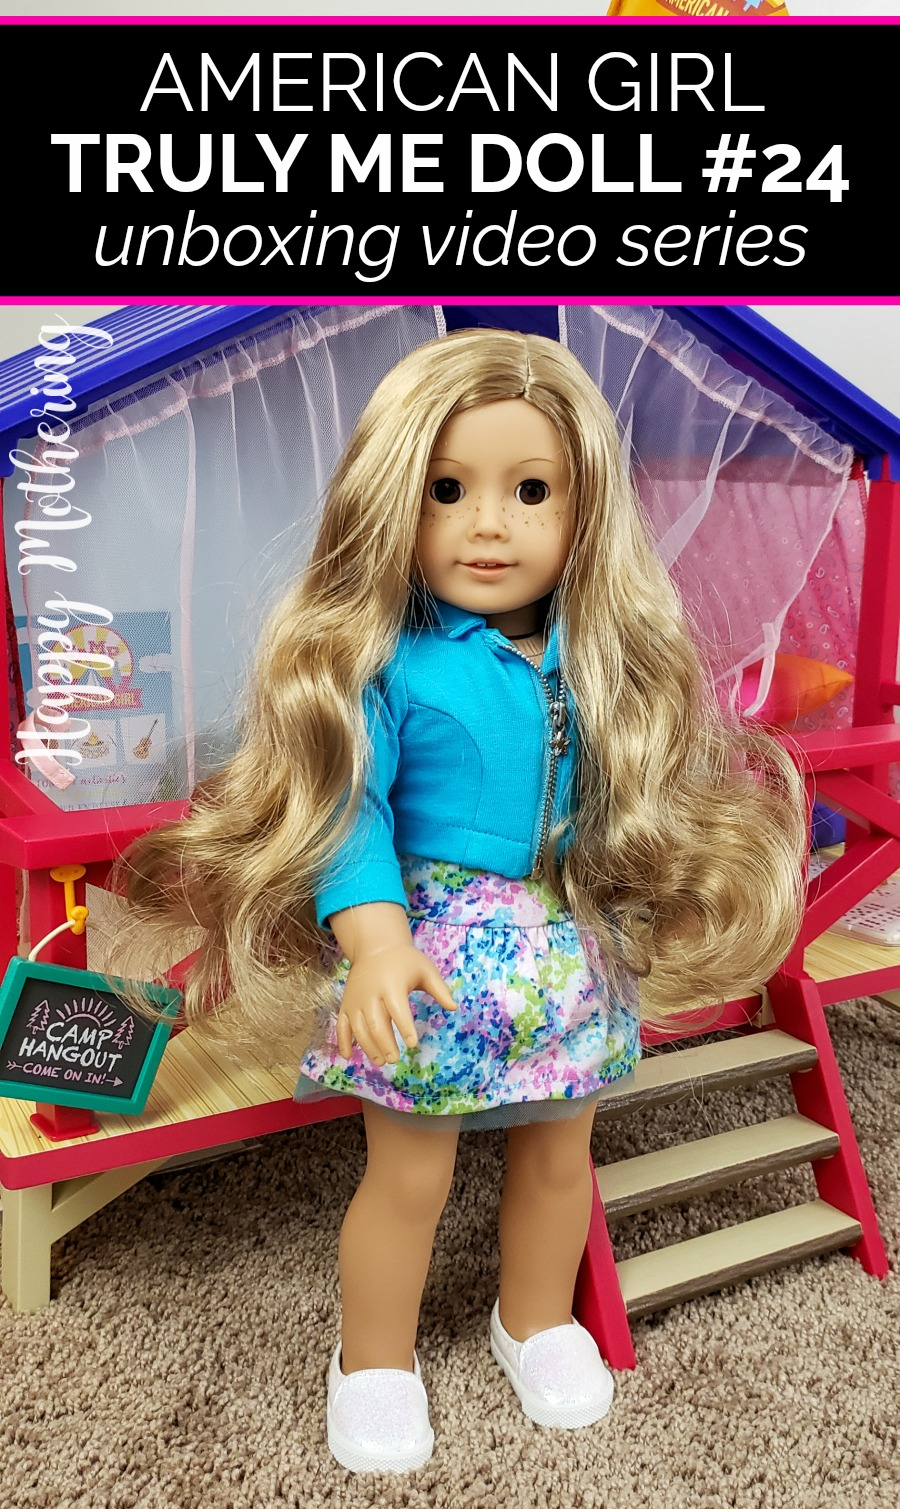 Have you seen an American Girl Truly Me doll up close before? Watch Kaylee and I unbox Truly Me Doll #24 and see all her adorable details up close.